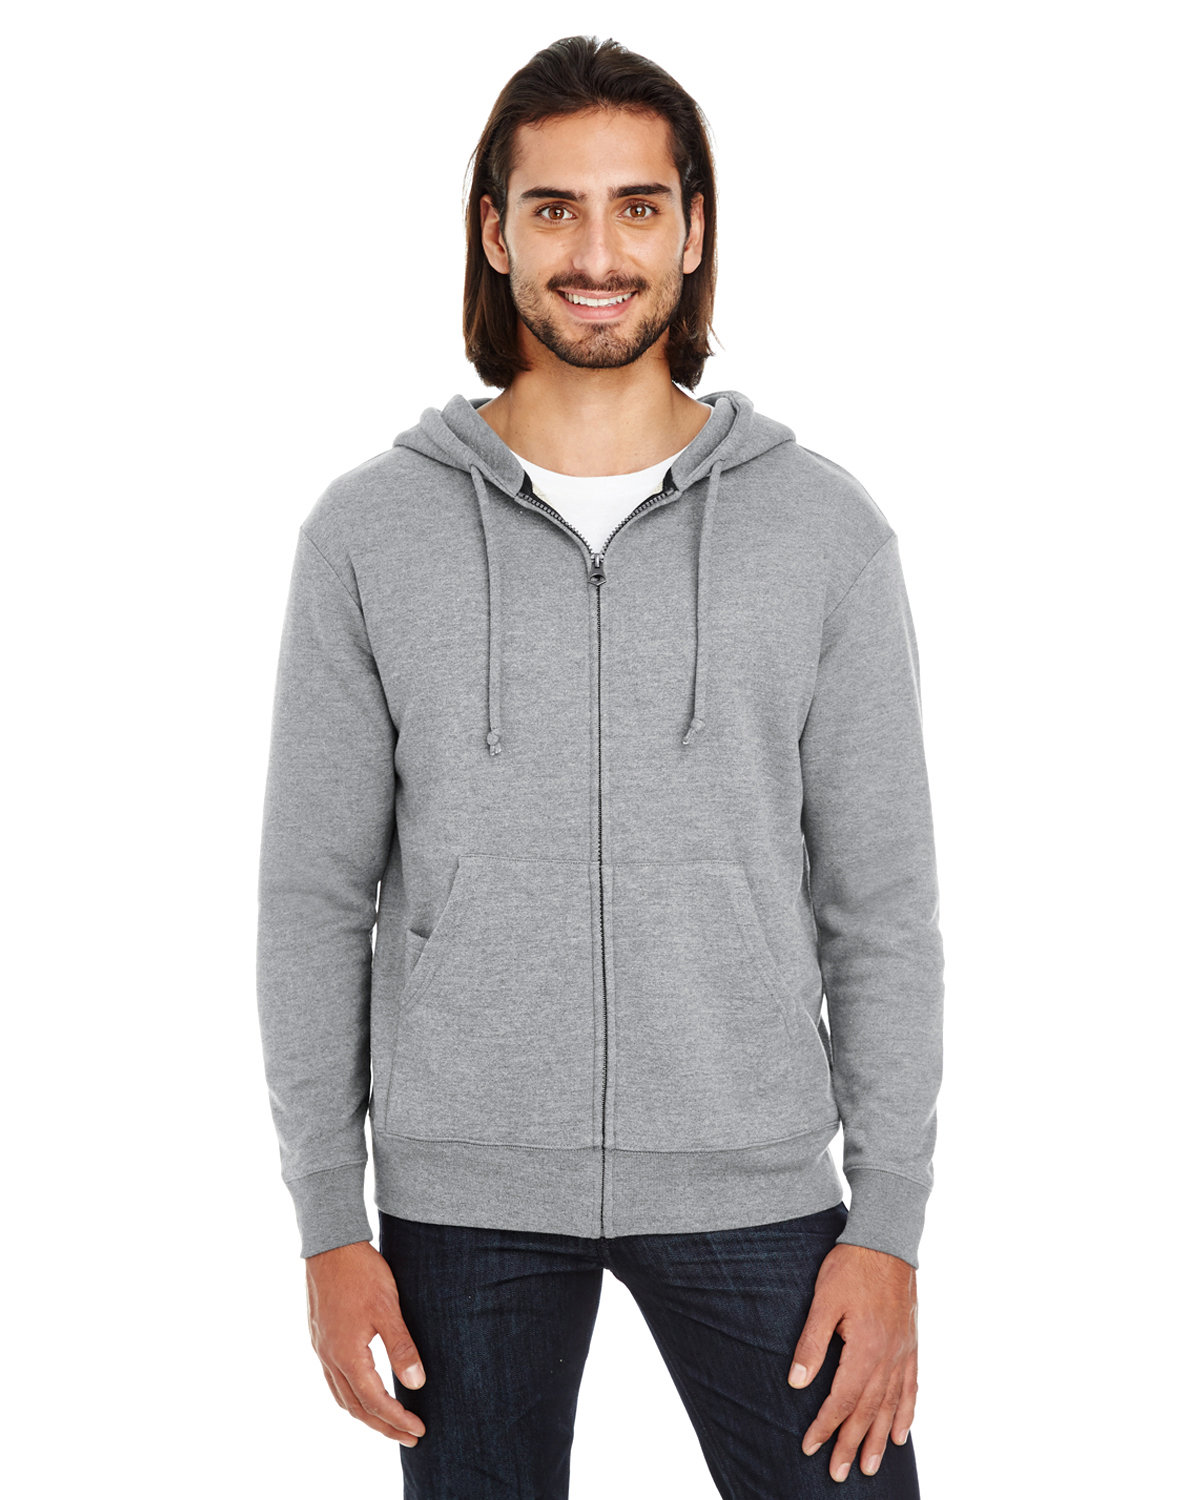 Threadfast Apparel Unisex Triblend French Terry Full-Zip CHARCOAL HEATHER